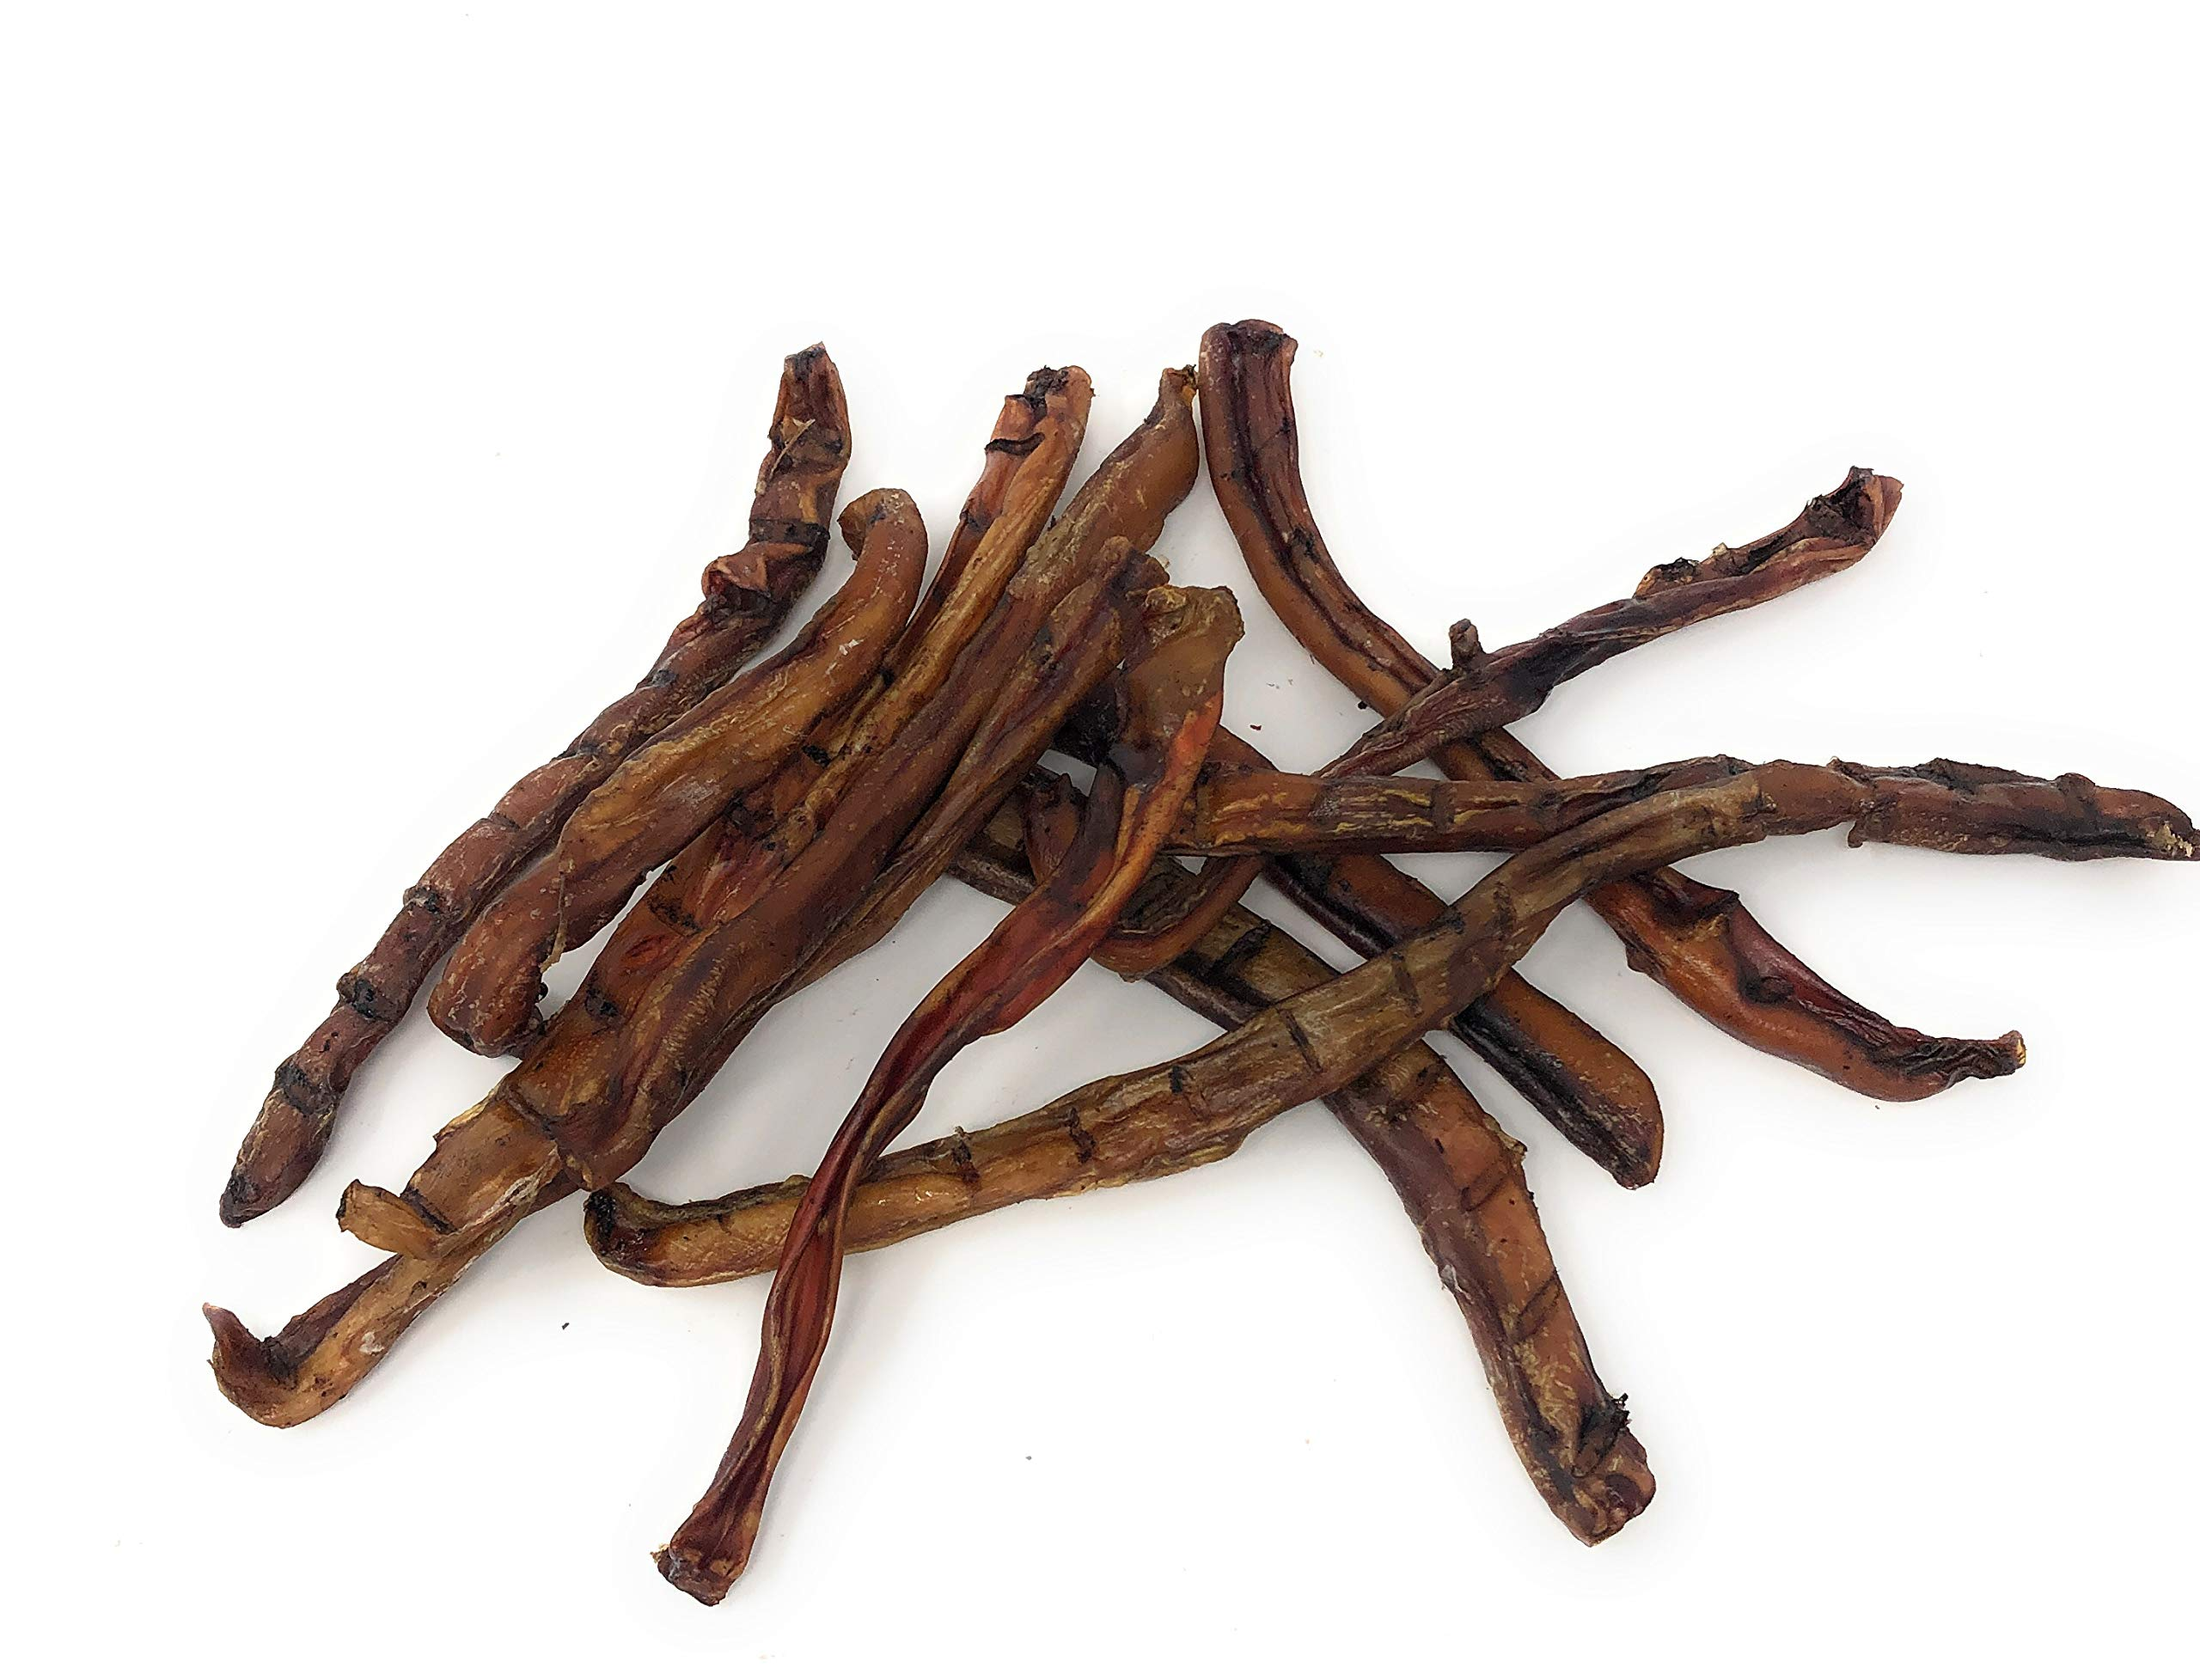 100% All Natural Beef Bully Sticks- Premium Grass Fed Beef Dog Chews- Smoked, Healthy Bully Sticks – Sourced and Made in The USA- No Additives or Artificial Preservatives- 12 Pack of 6-8 Inch Sticks